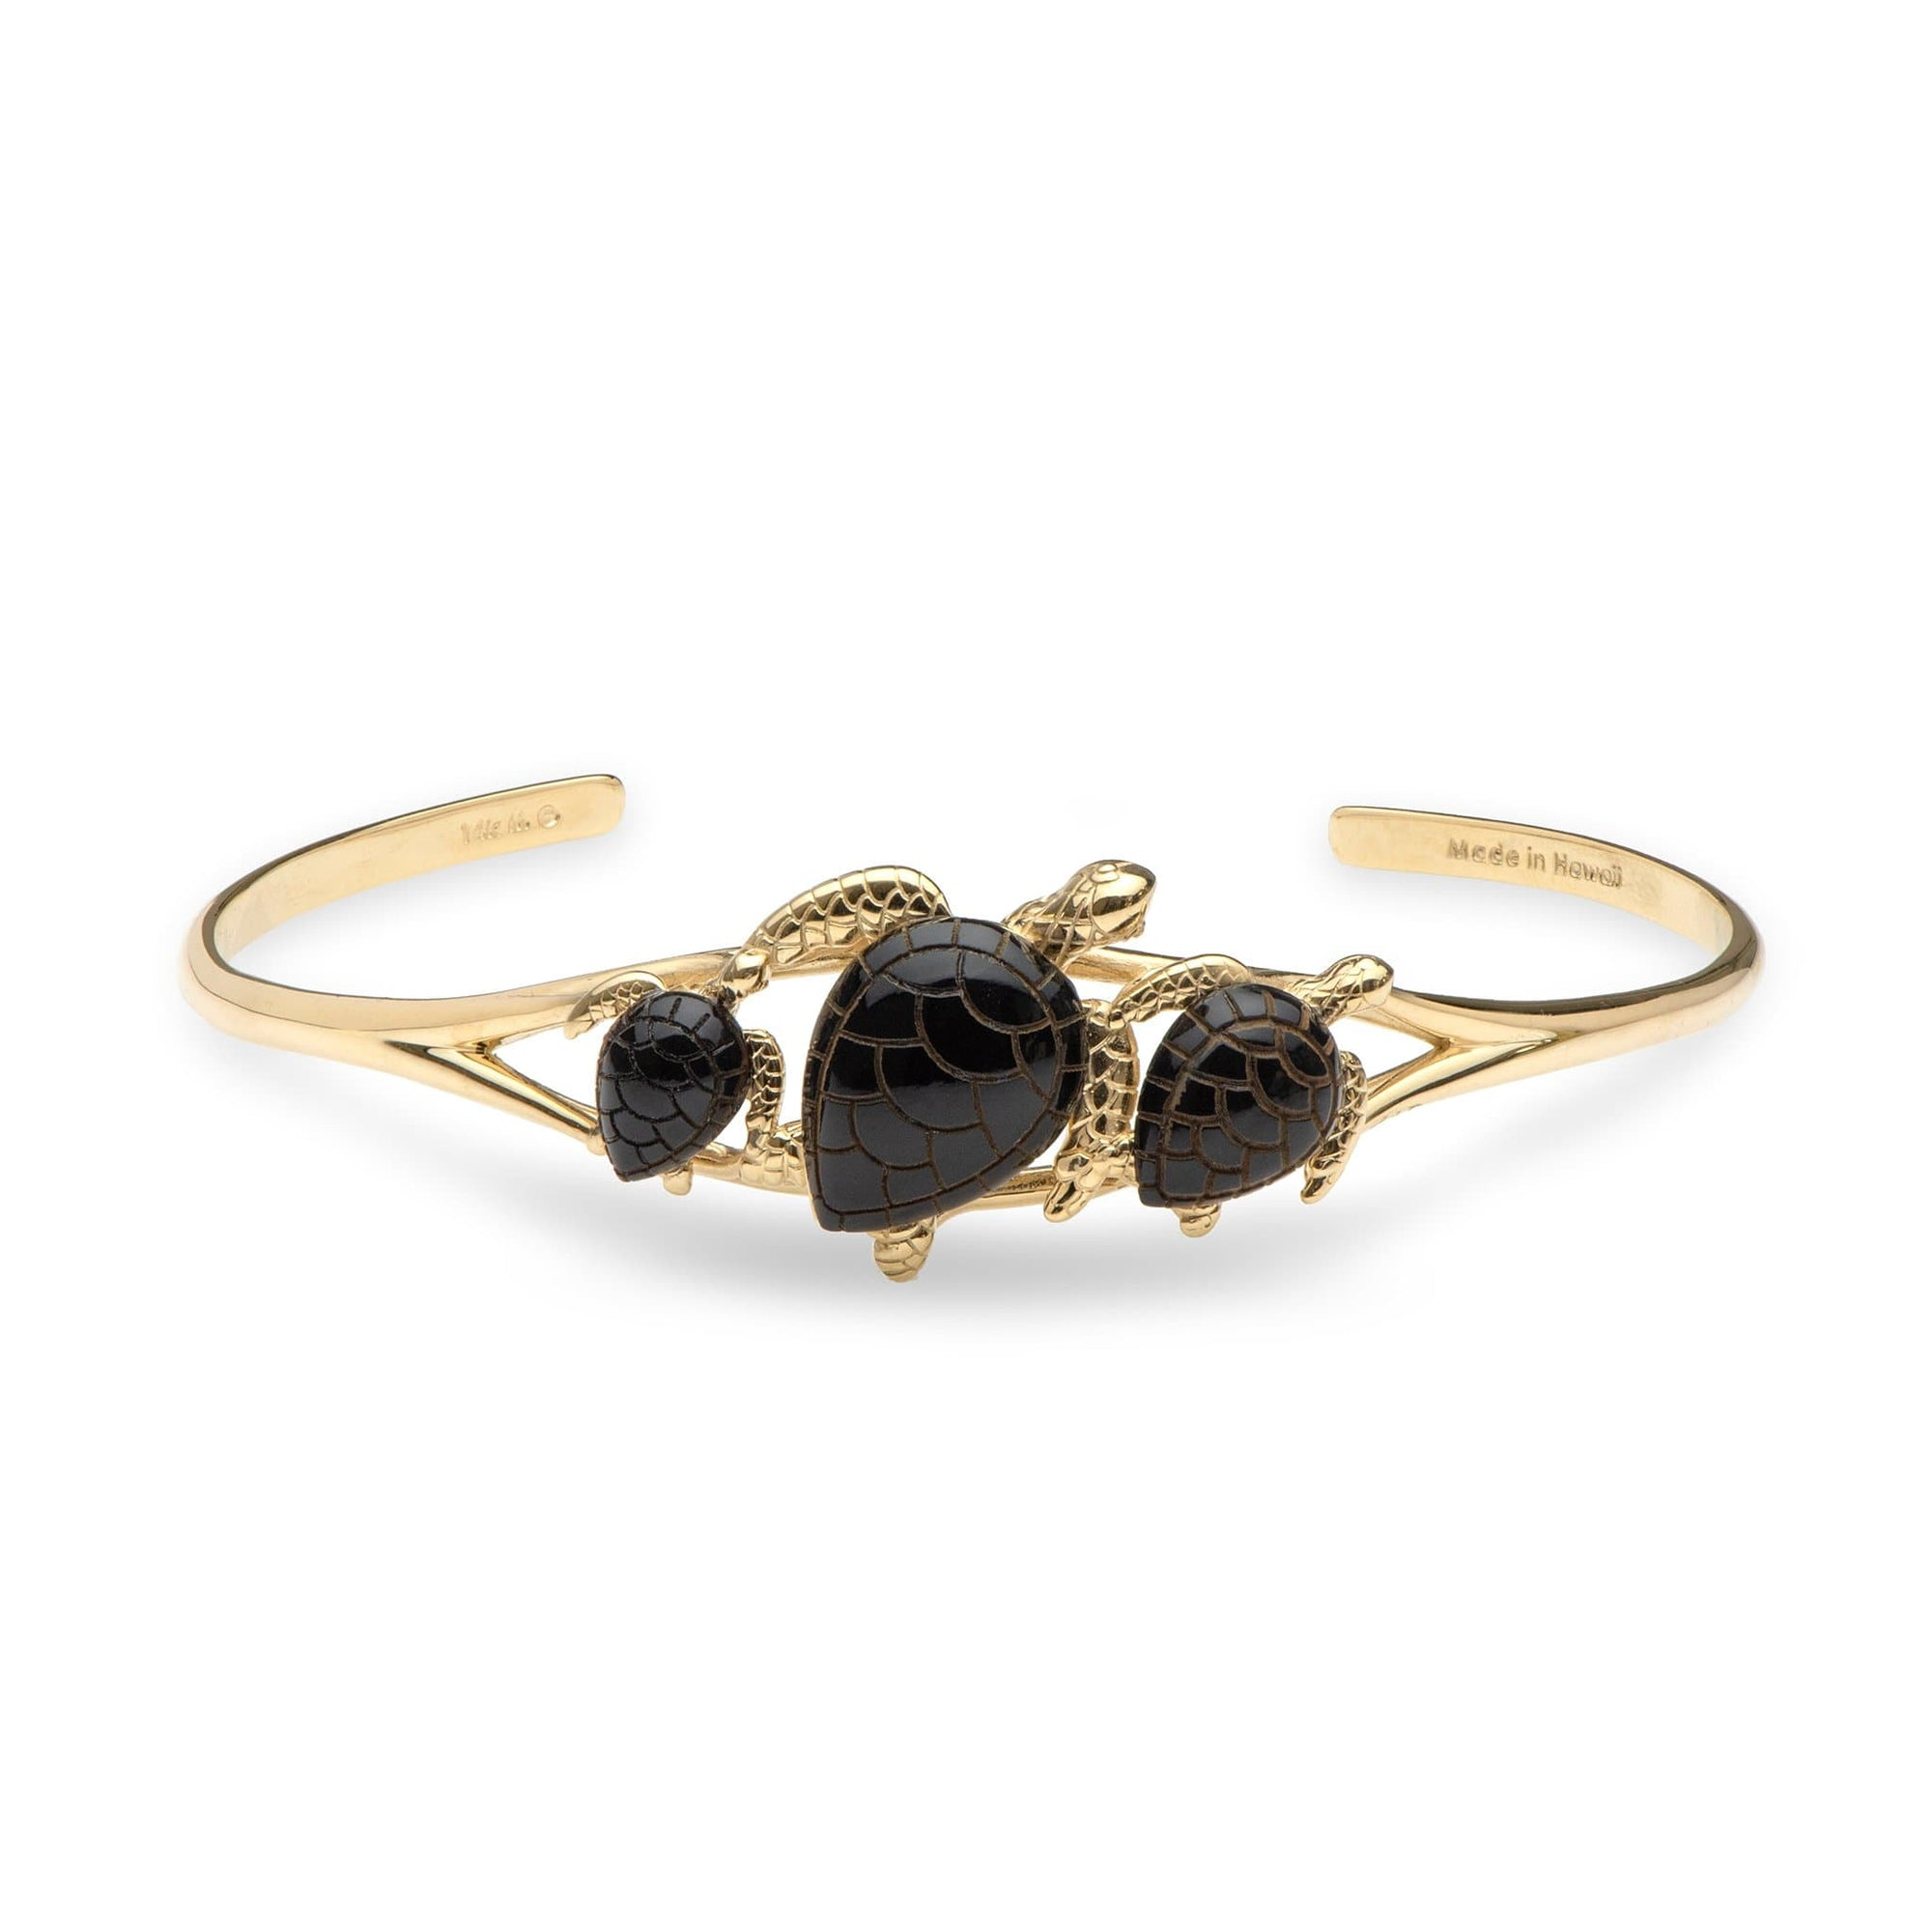 Black Coral Turtle Cuff Bracelet in 14K Yellow Gold - Maui Divers Jewelry